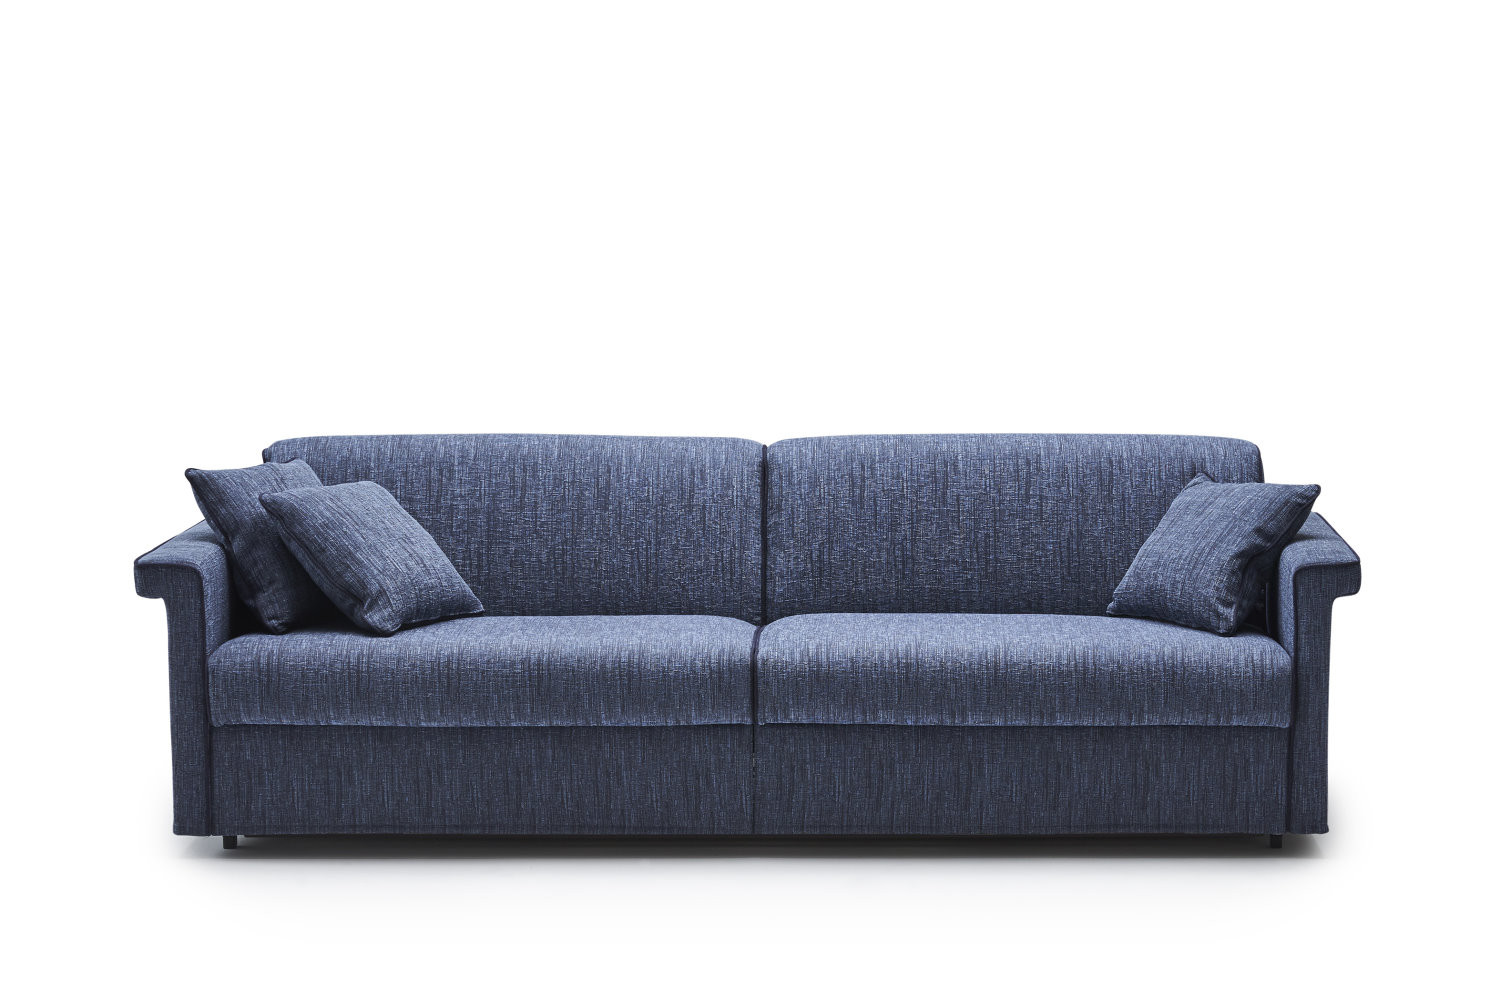 Michel 3 Seater Sofa With Double Bed